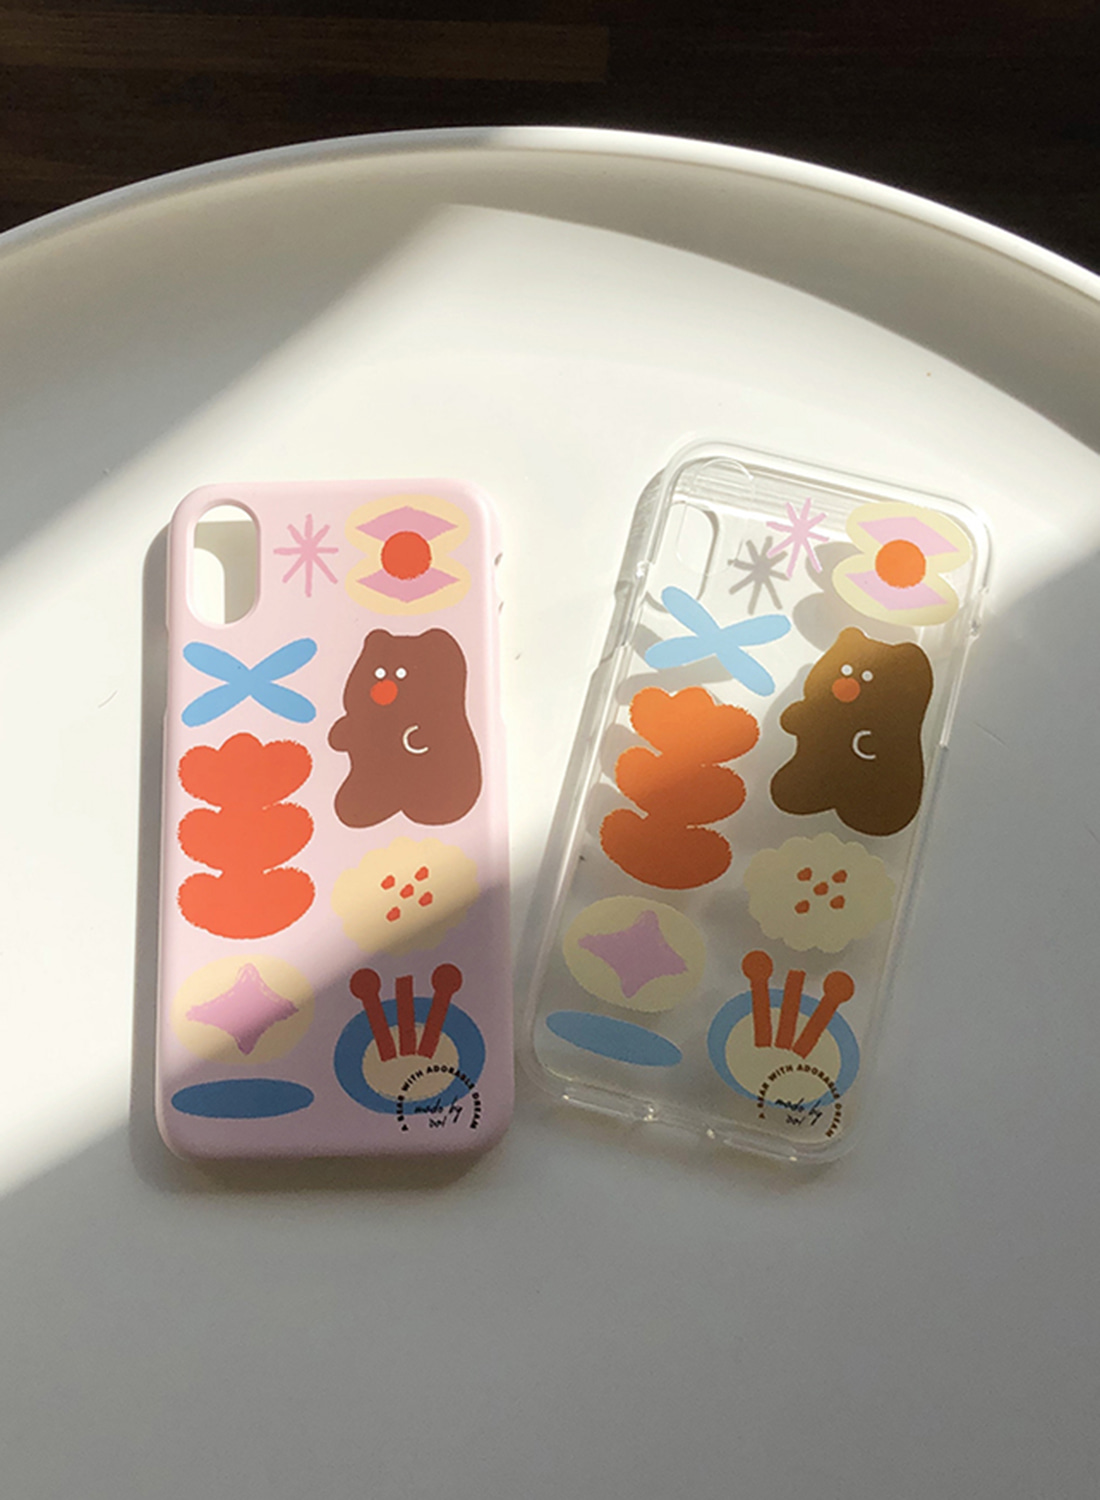 Dreaming Bear Pattern Case (Hard/Jelly)